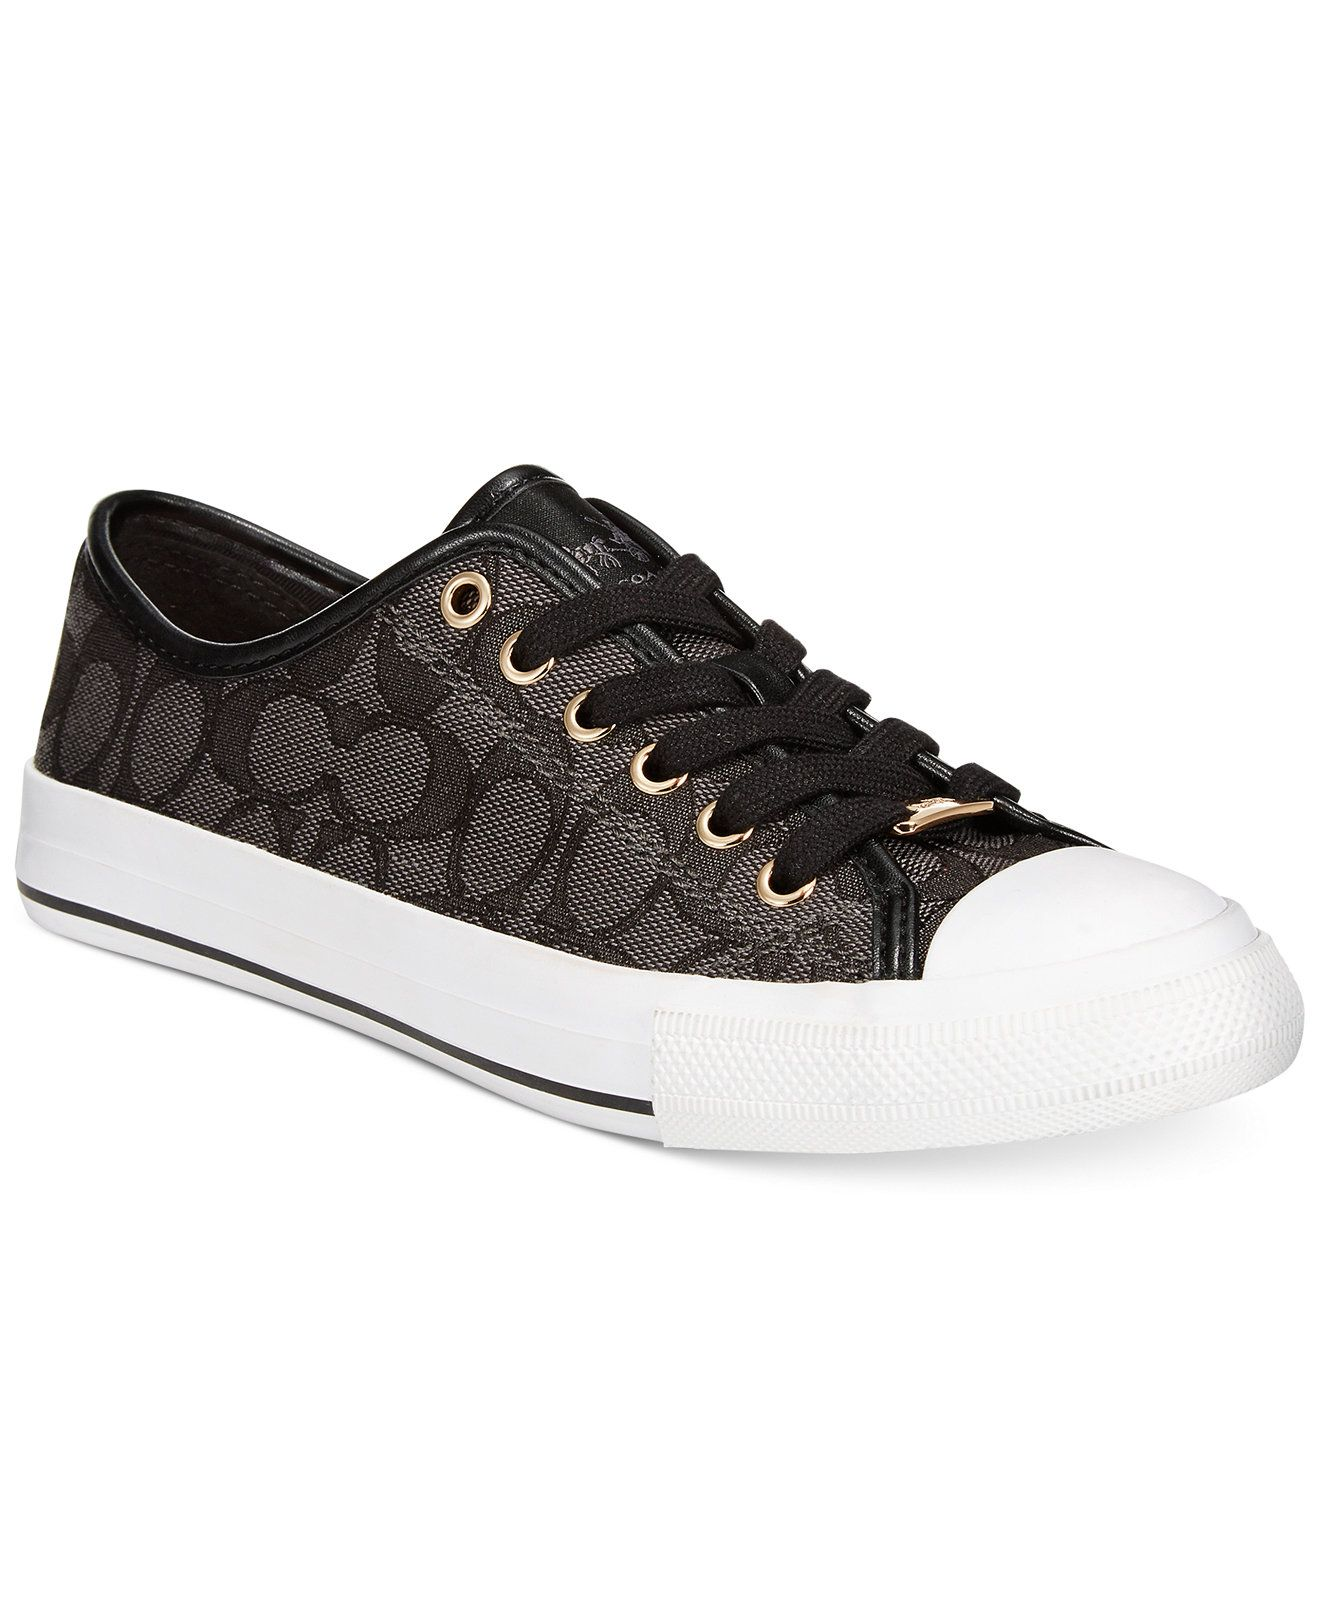 b1a91d05bc5c COACH Empire Low Top Logo Sneakers - COACH - Shoes - Macy s